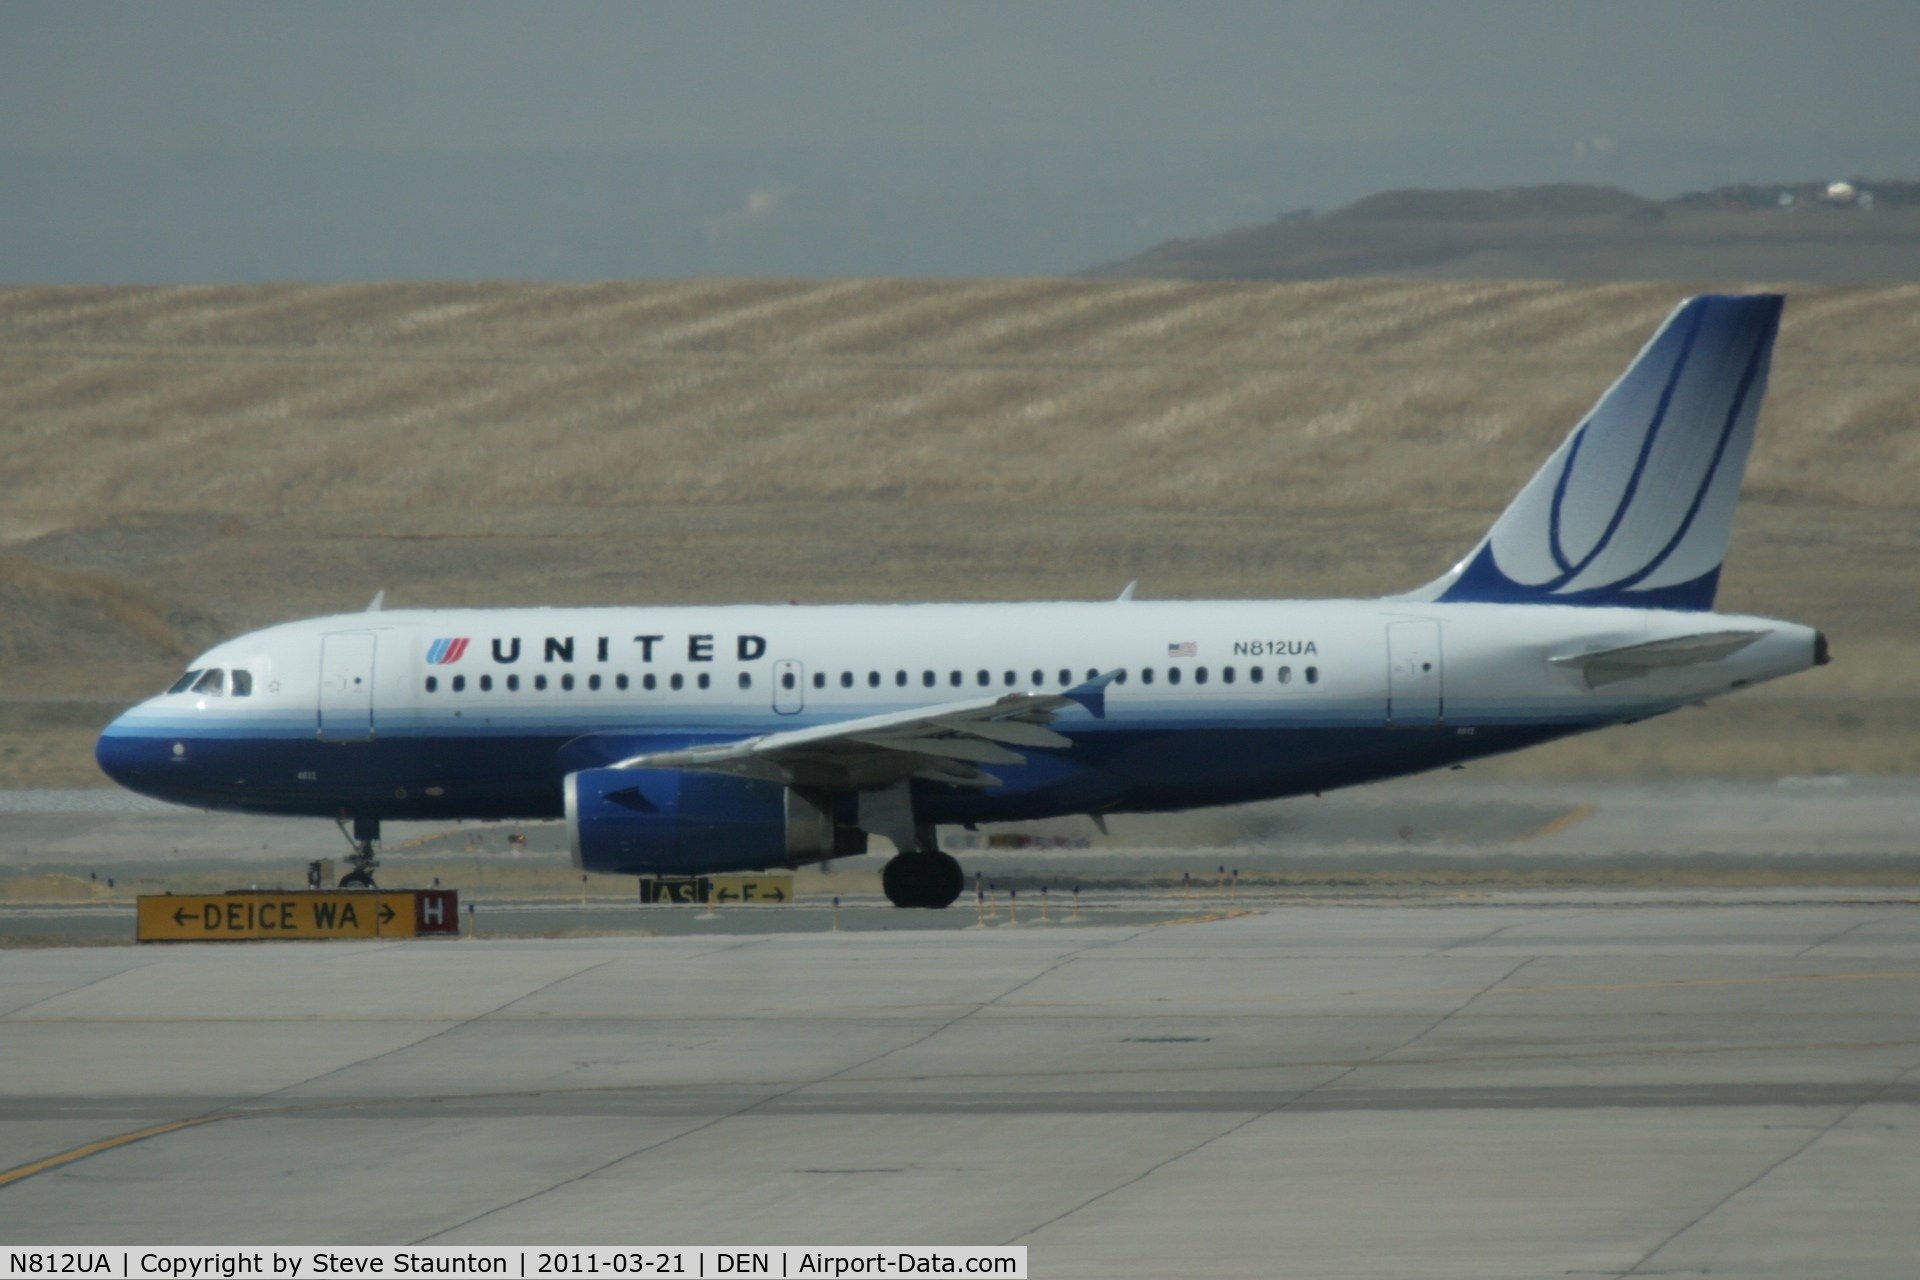 N812UA, 1998 Airbus A319-131 C/N 850, Taken at Denver International Airport, in March 2011 whilst on an Aeroprint Aviation tour